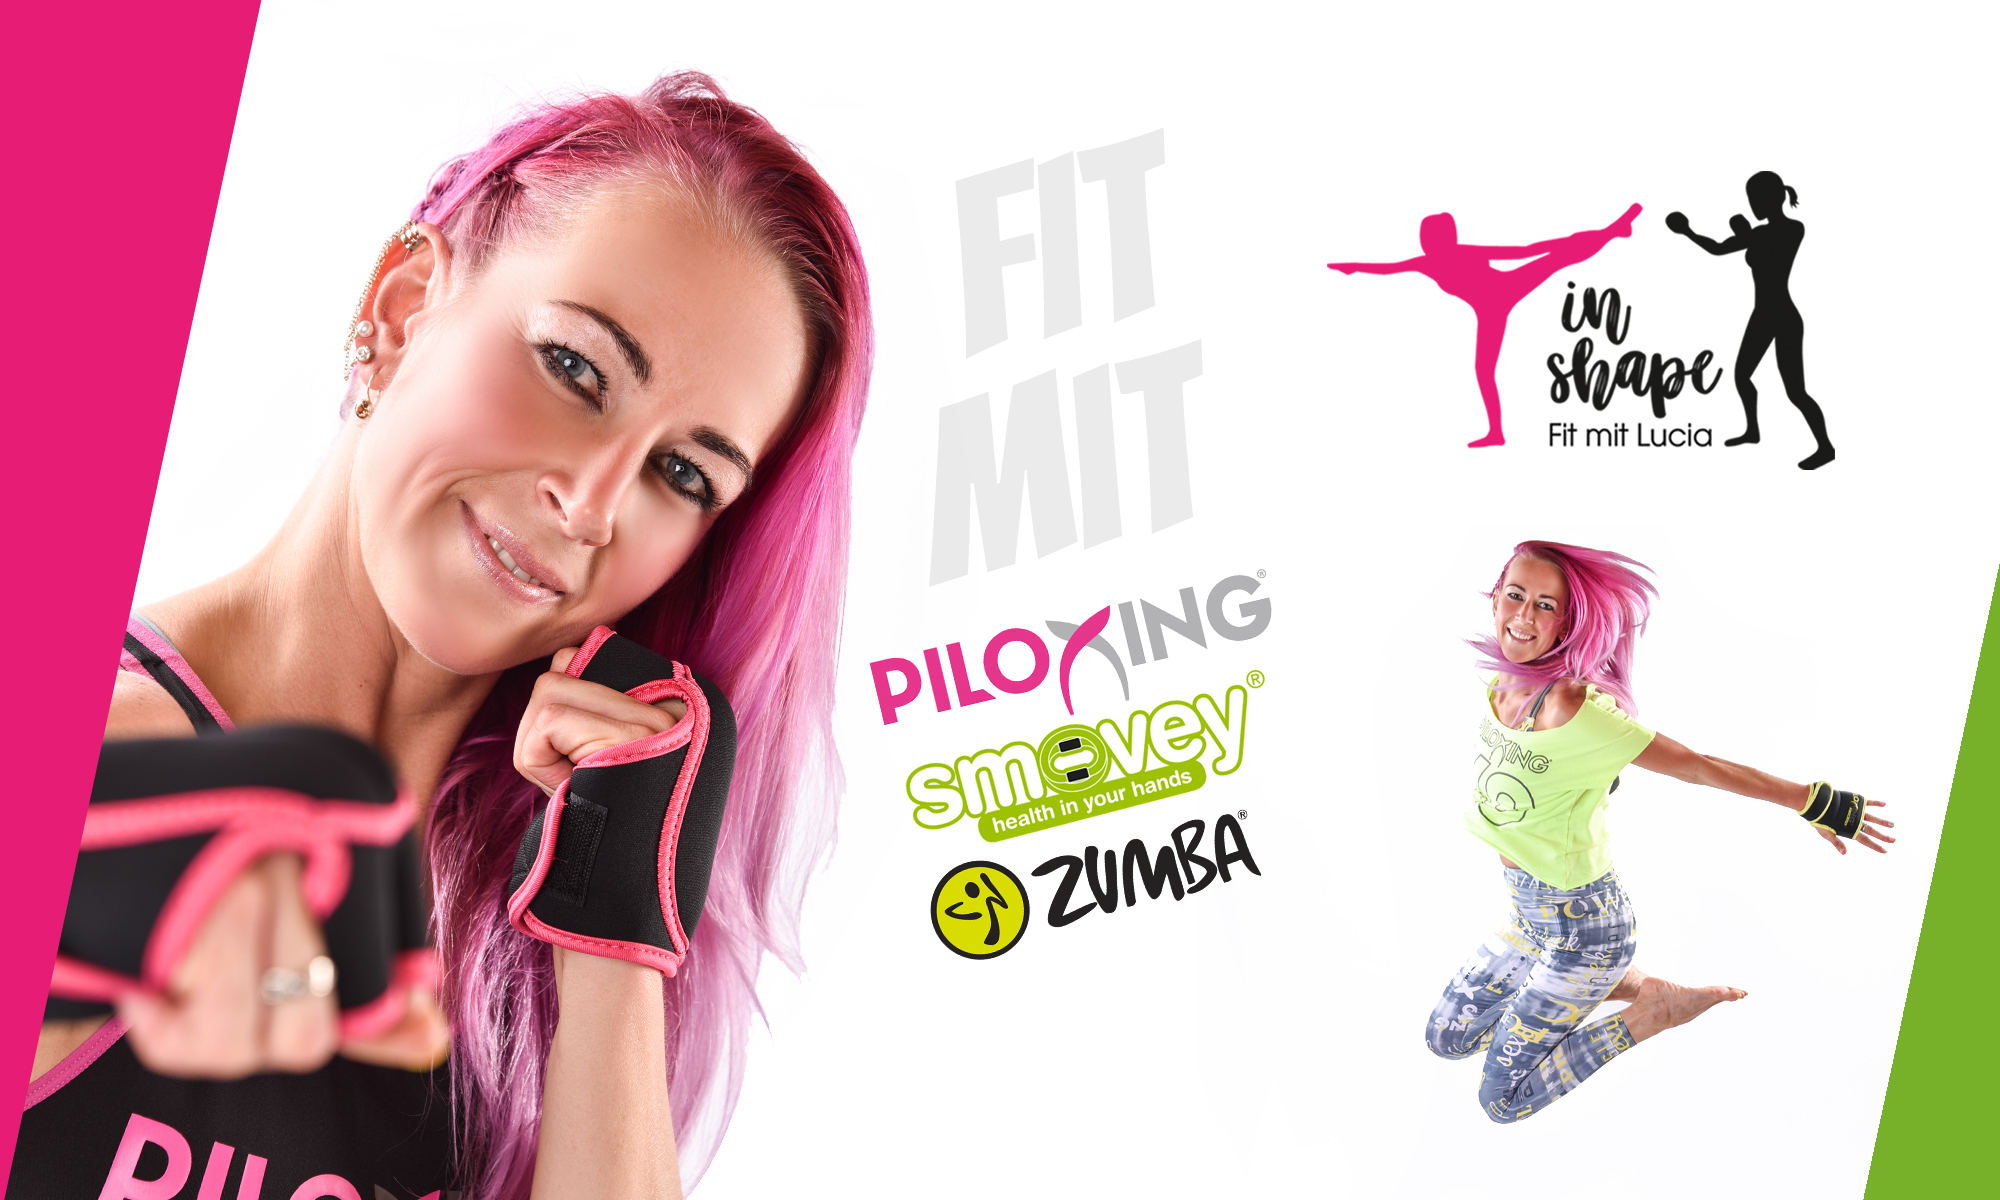 Inshape - Fit mit Lucia